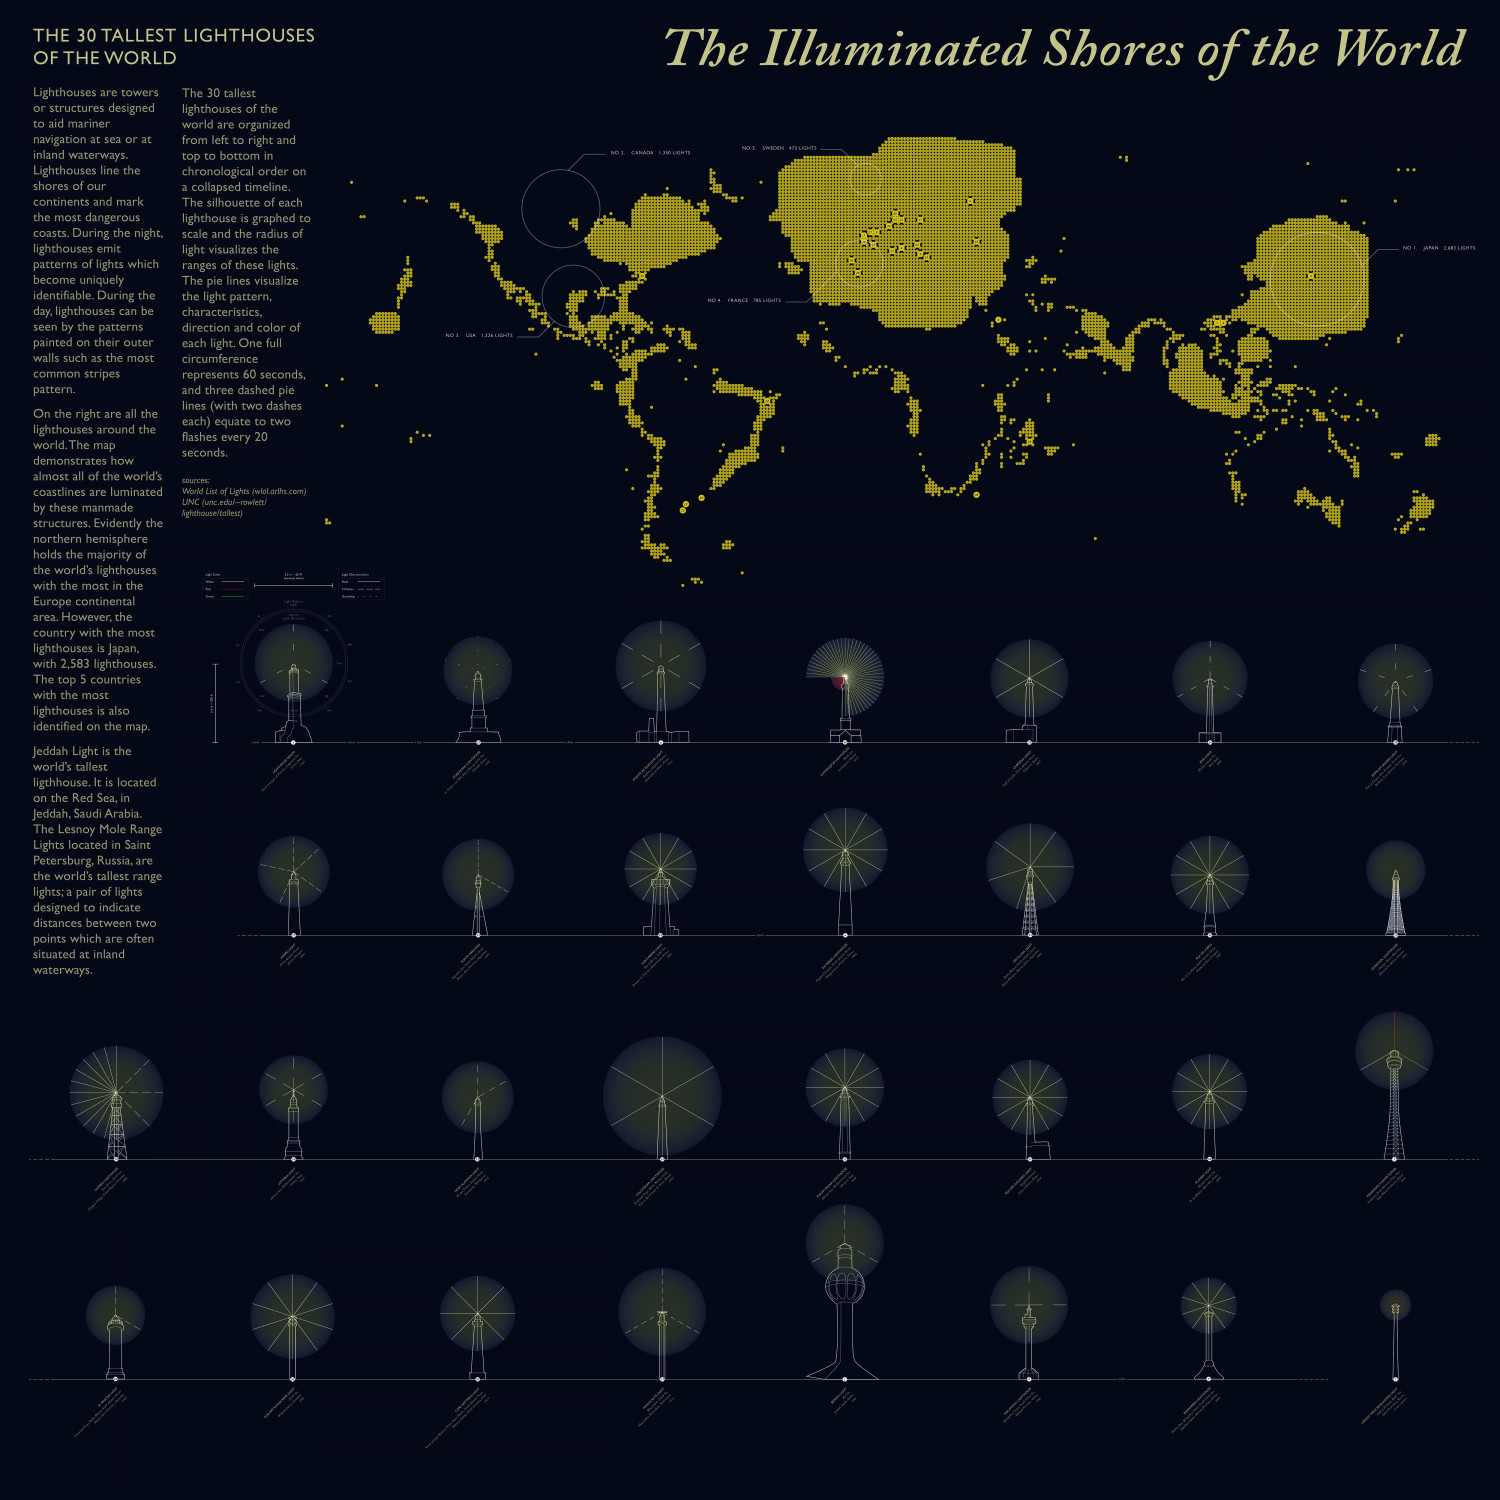 The Illuminated Shores of the World Infographic